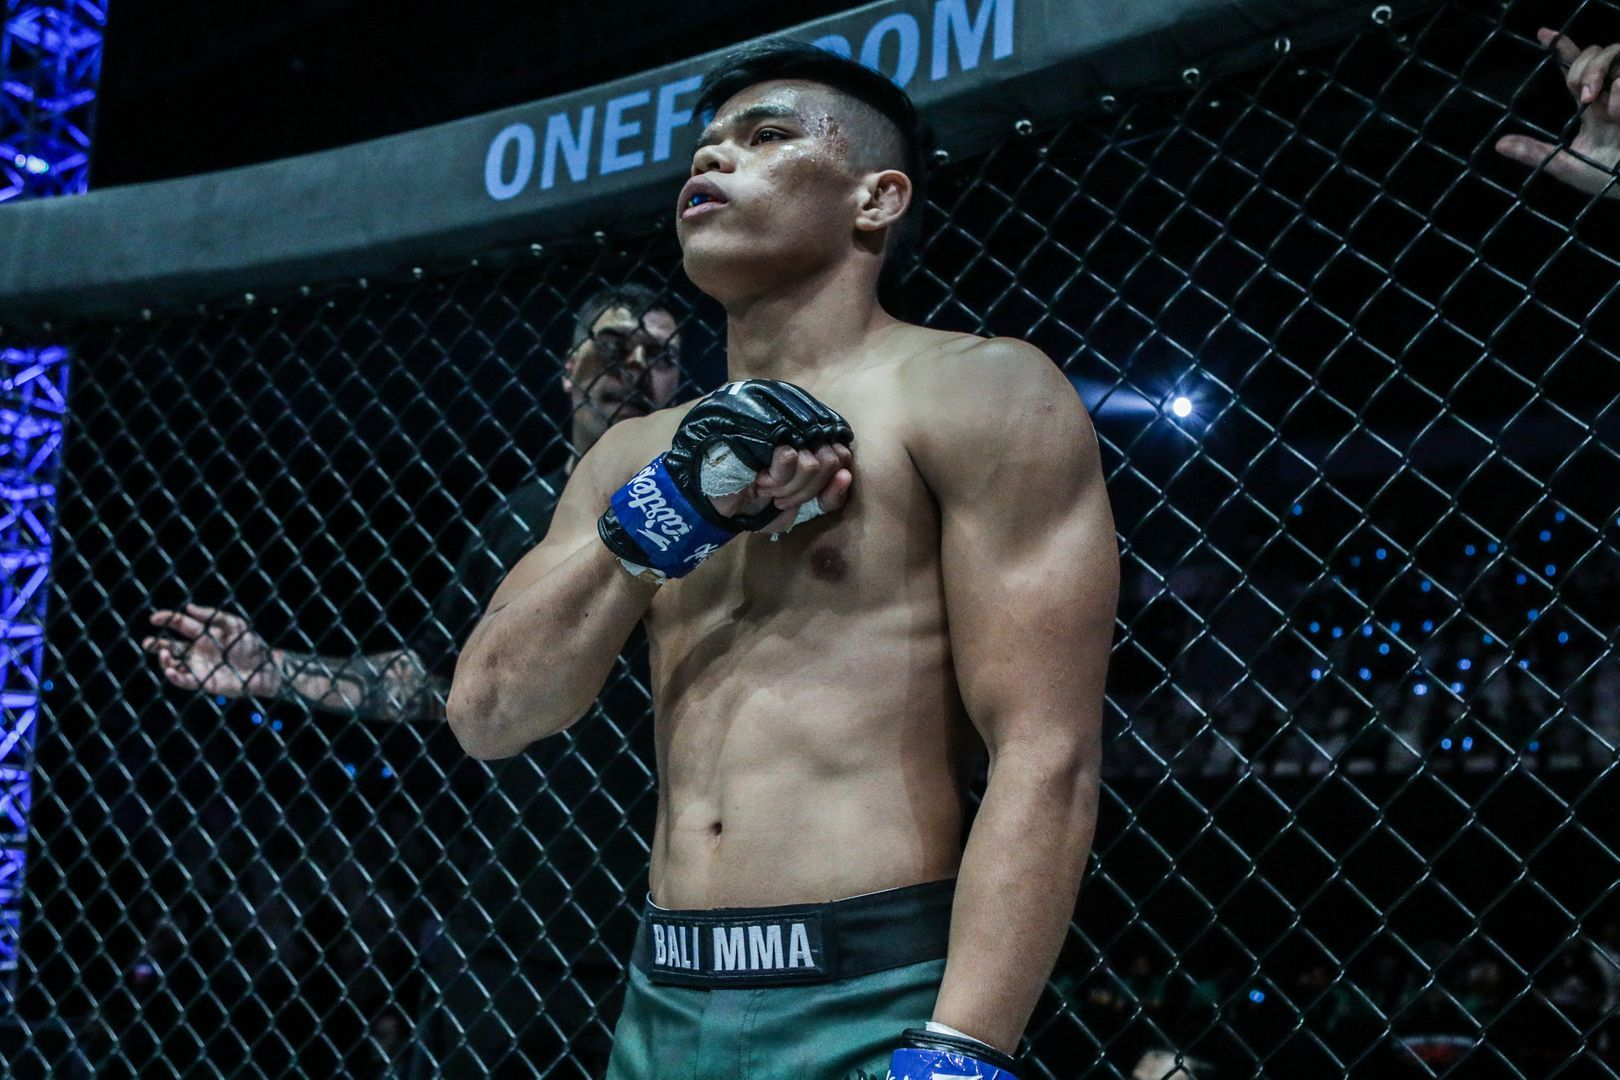 Indonesian MMA fighter Elipitua Siregar stands inside the cage, ready for battle